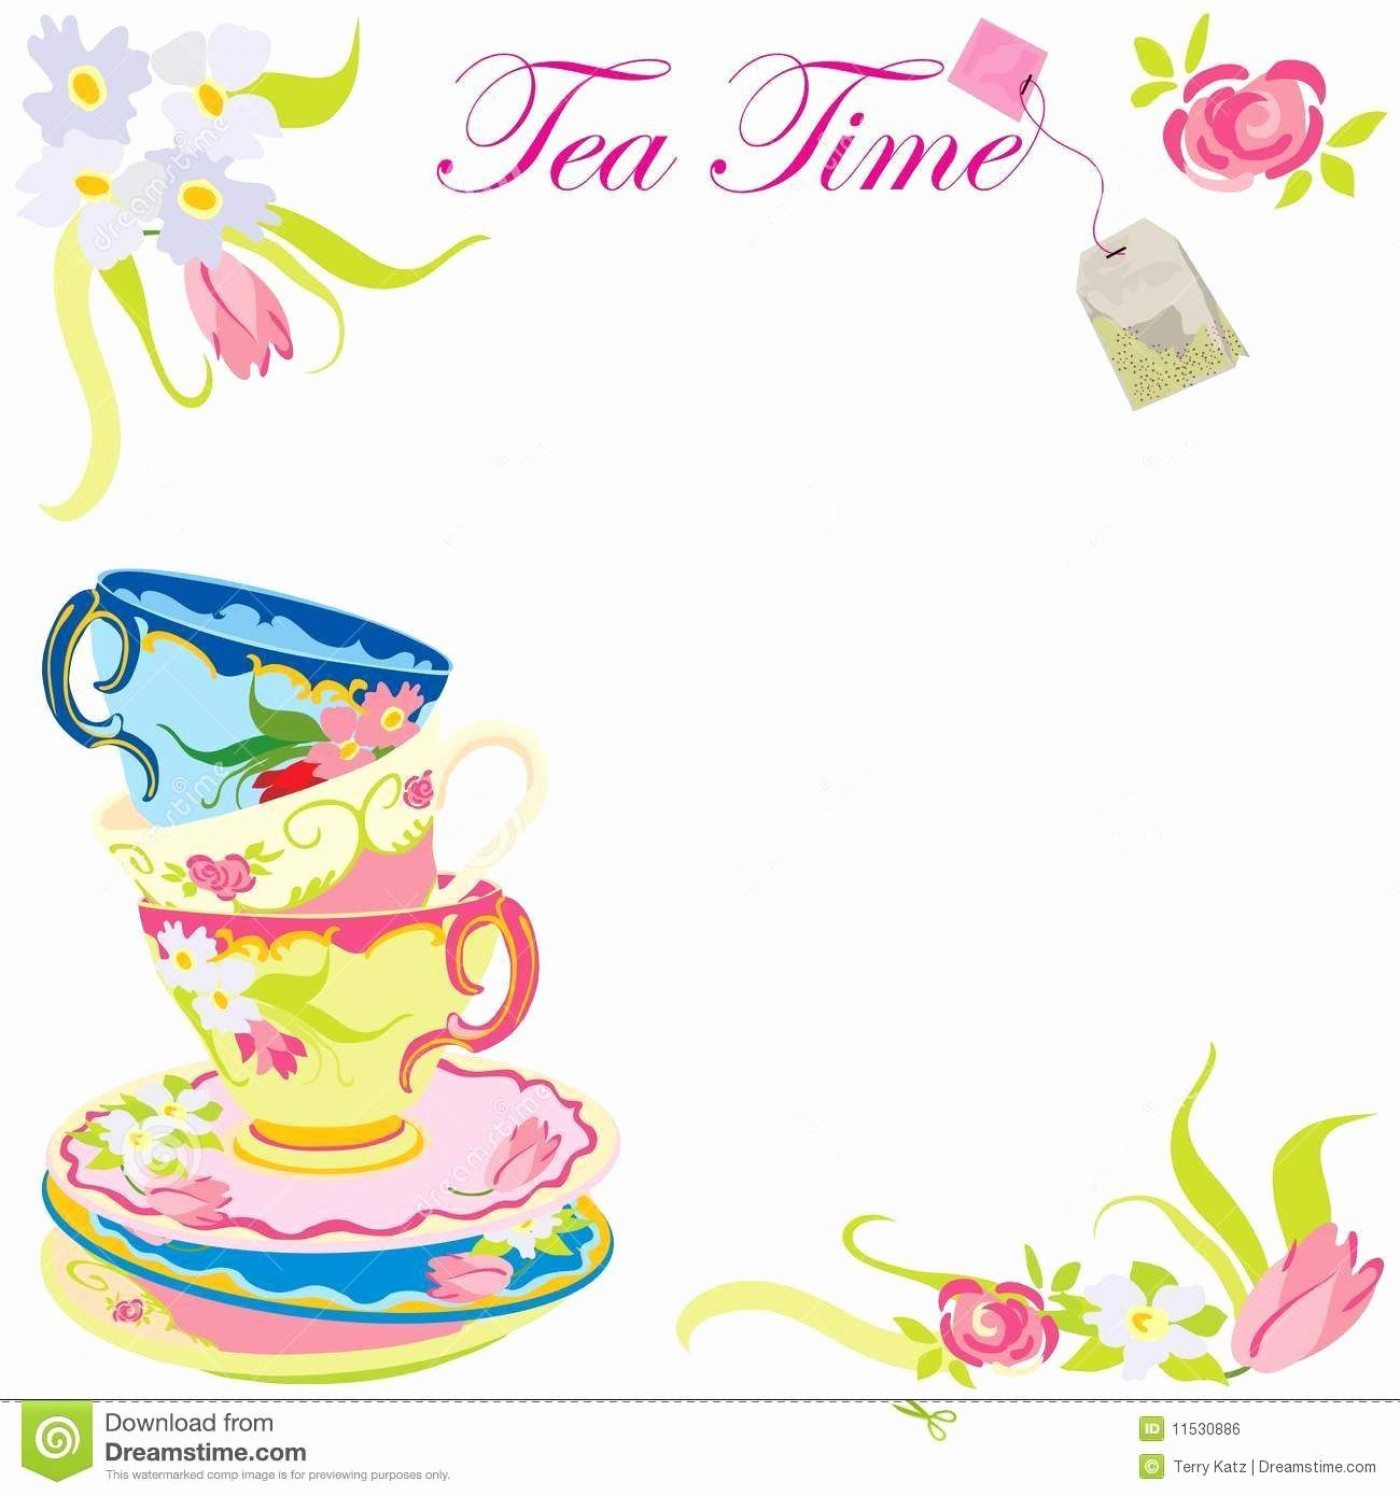 009 Stirring Tea Party Invitation Template Sample  Wording Vintage Free1400